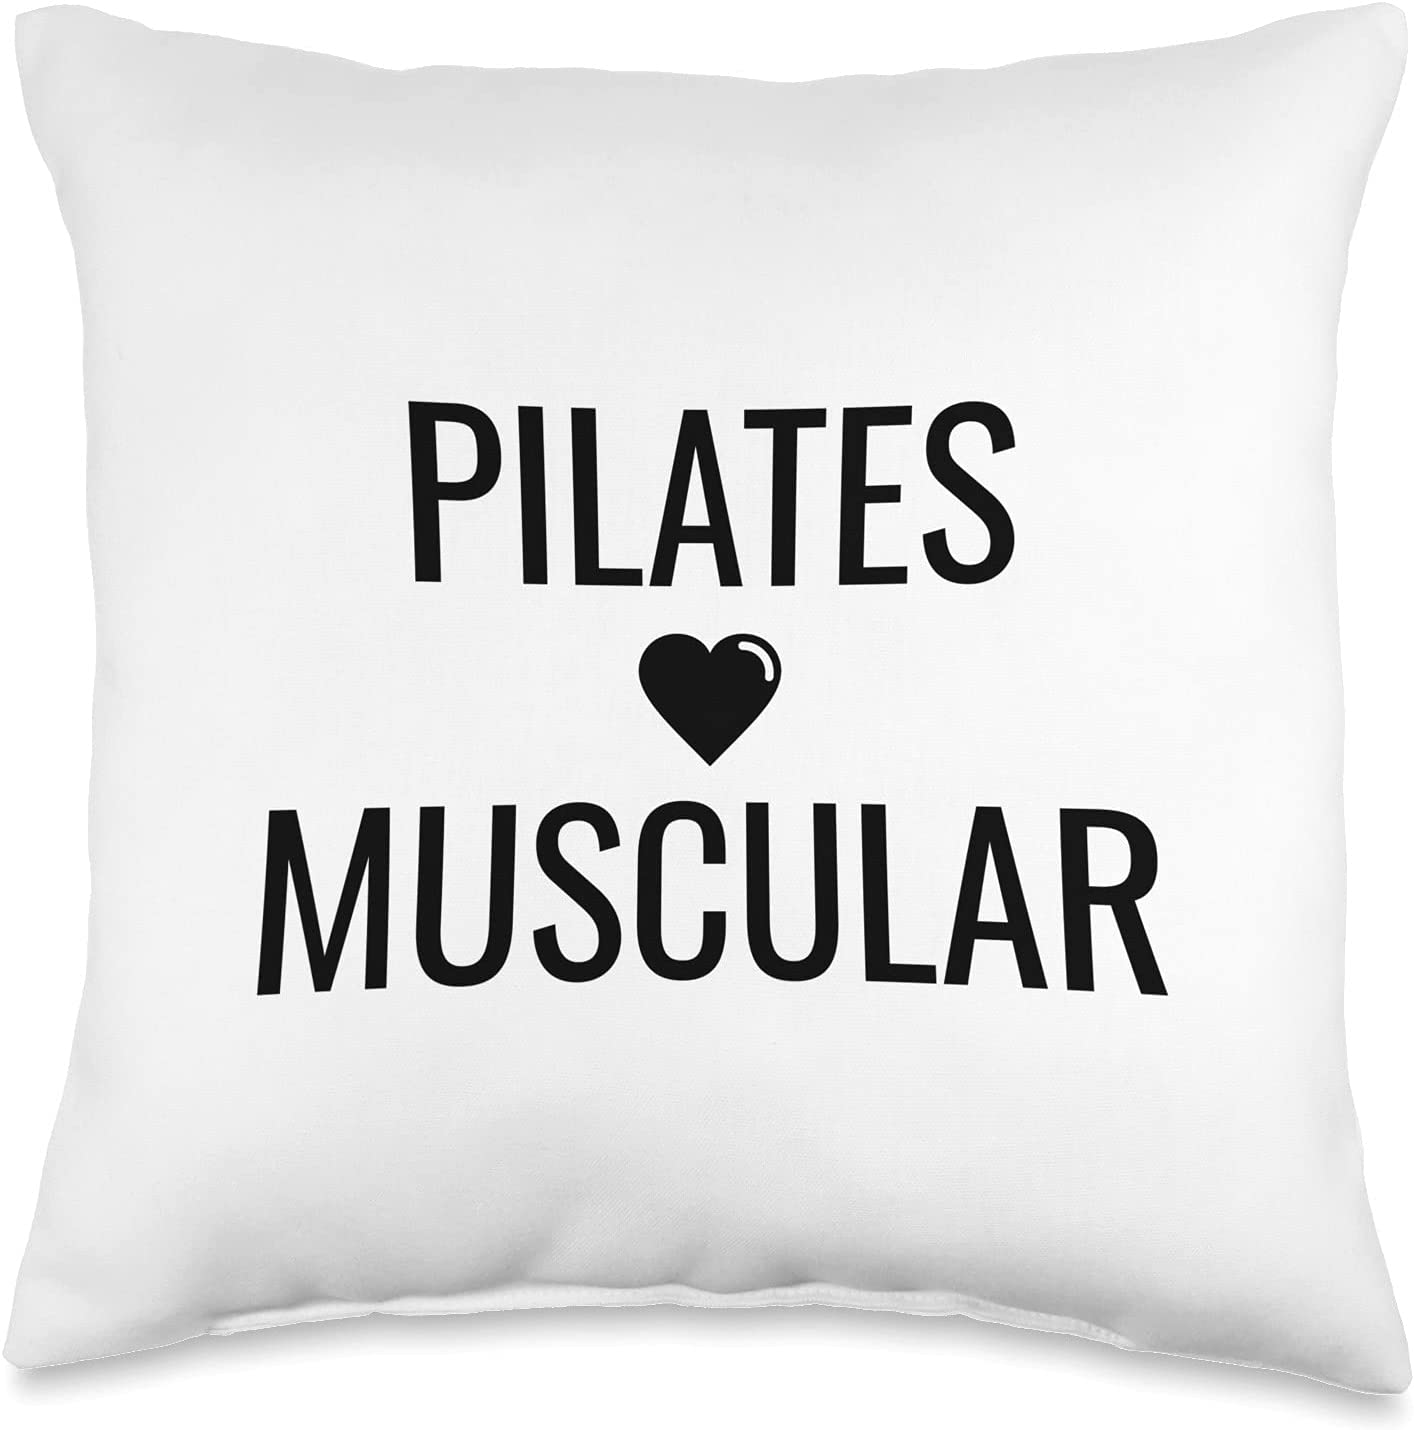 Statement Blend Pilates muscular Store 16x16 Multicolor Pillow Throw Recommended